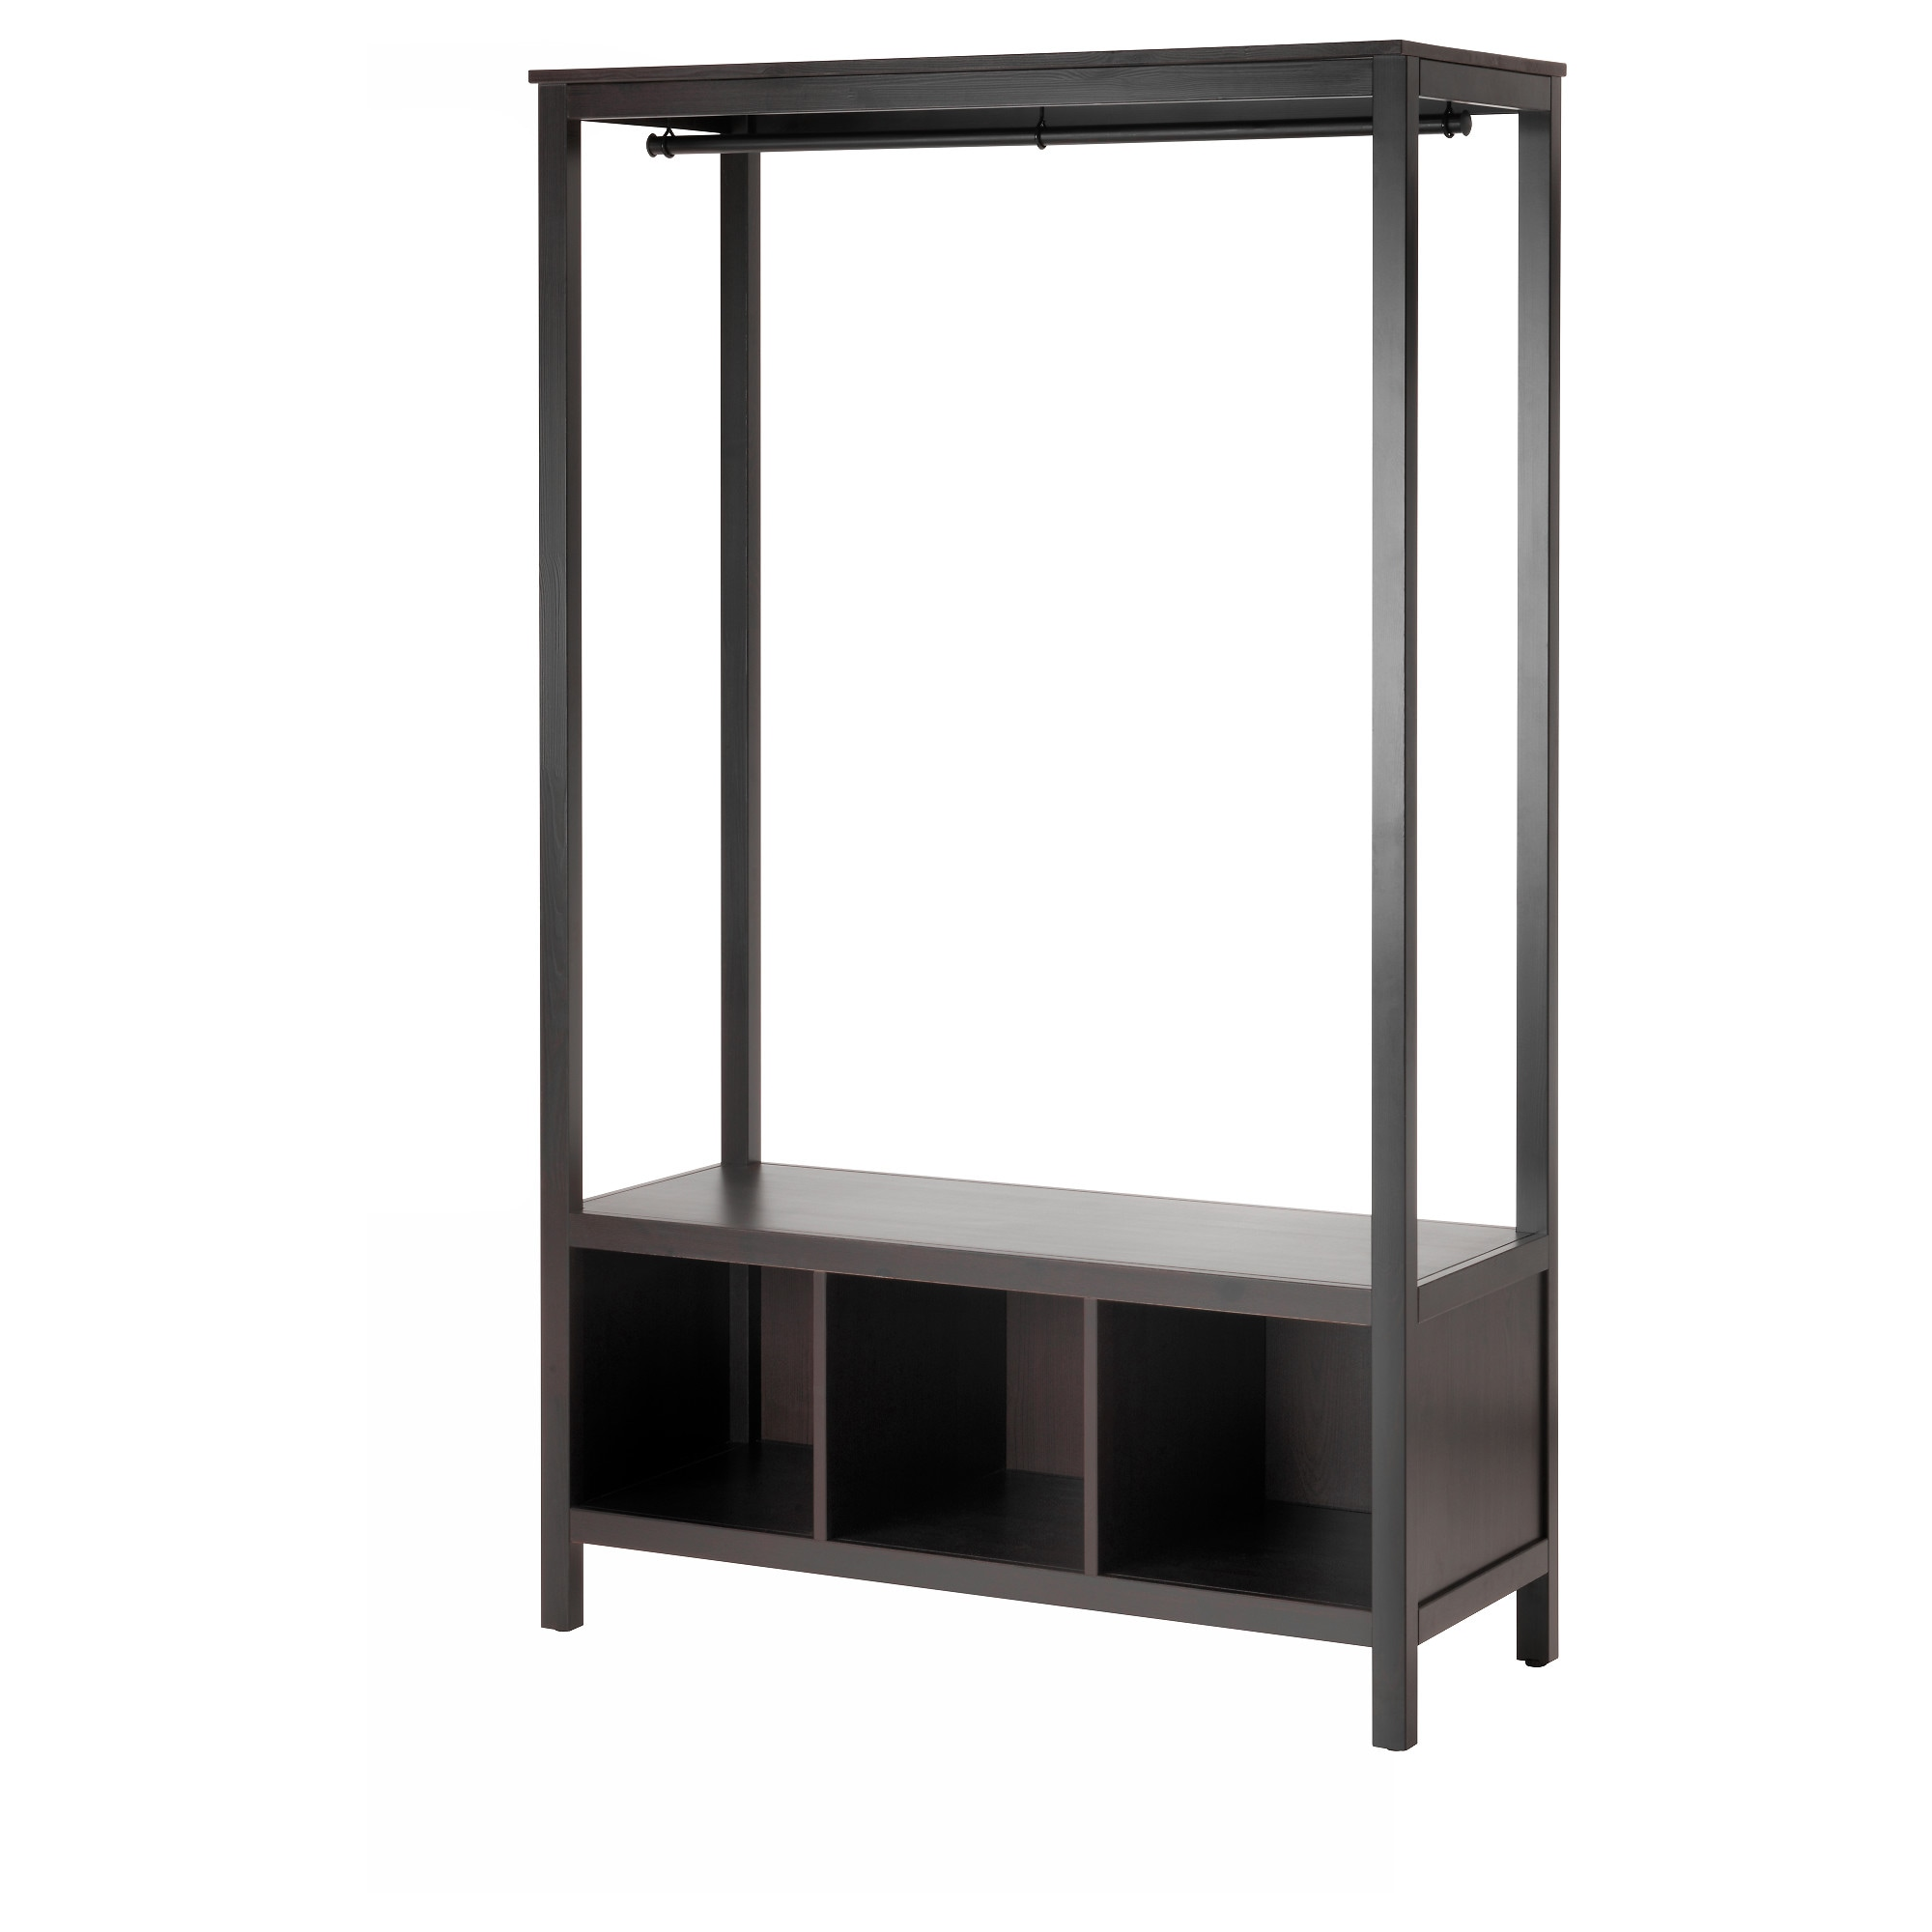 lit gigogne hemnes hemnes ikea kast geschilderd met early. Black Bedroom Furniture Sets. Home Design Ideas